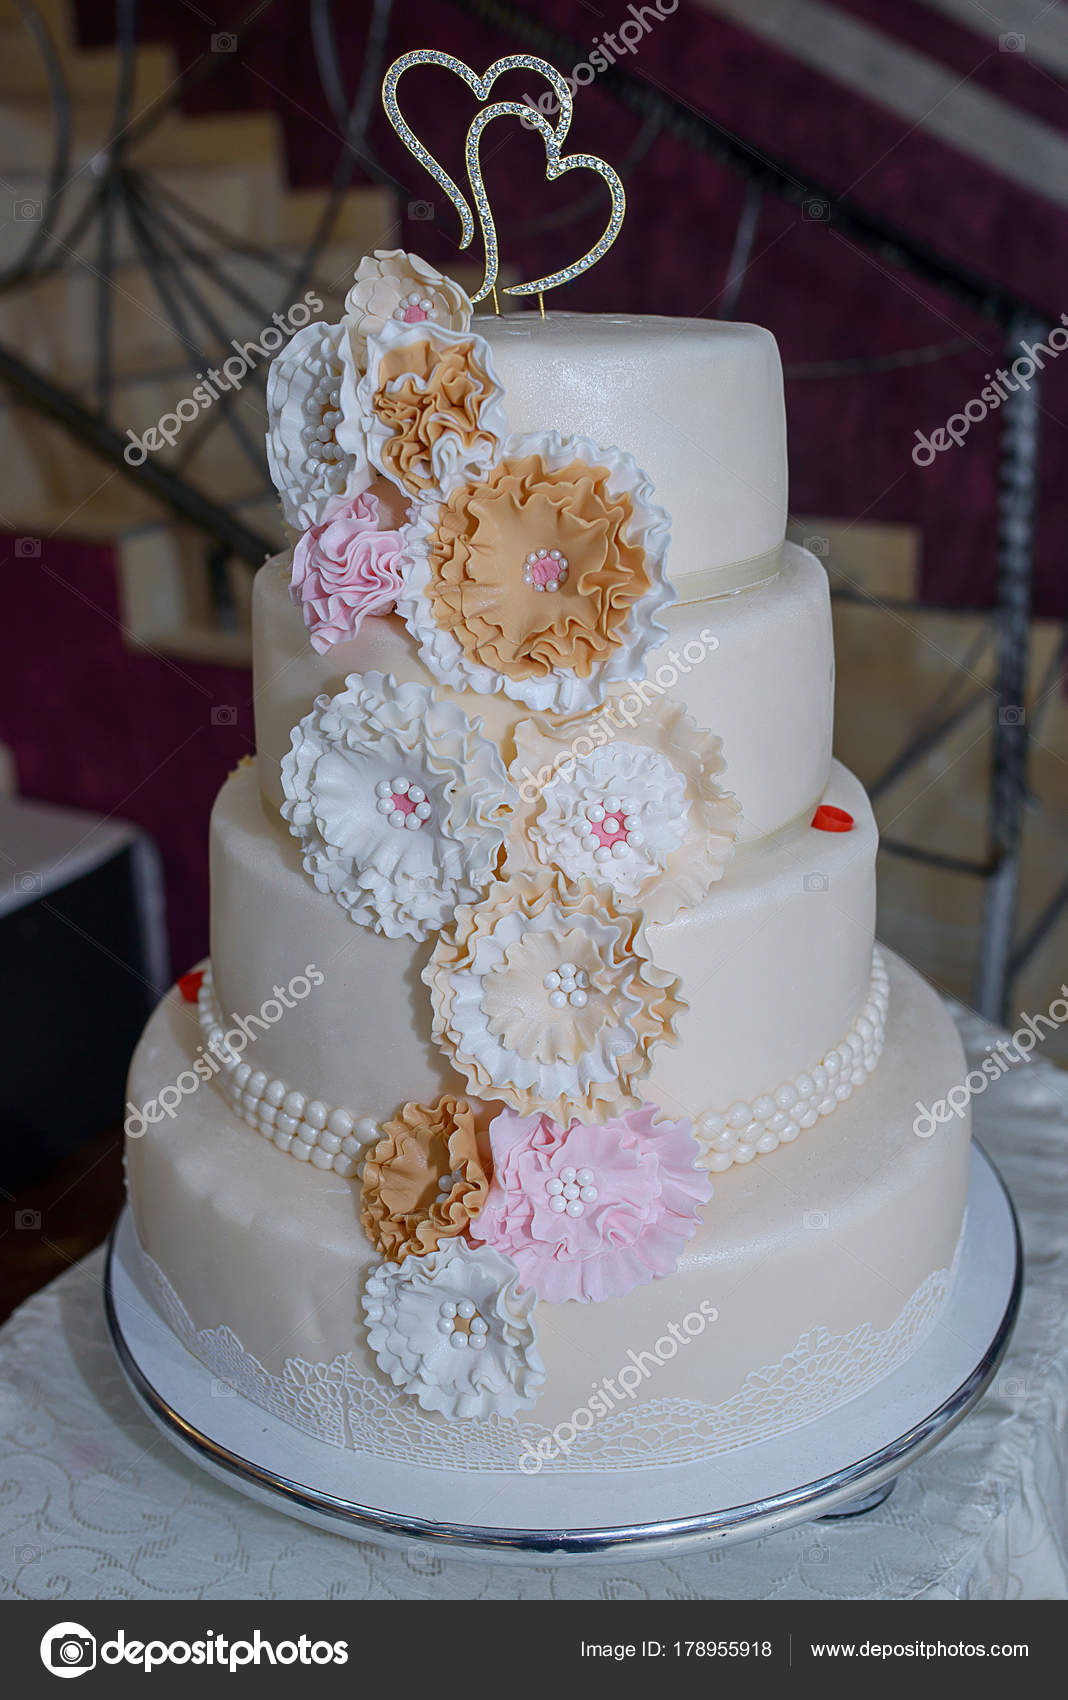 Four Tiered Wedding Cake Pastel Colored Flowers Edible Lace Pearls